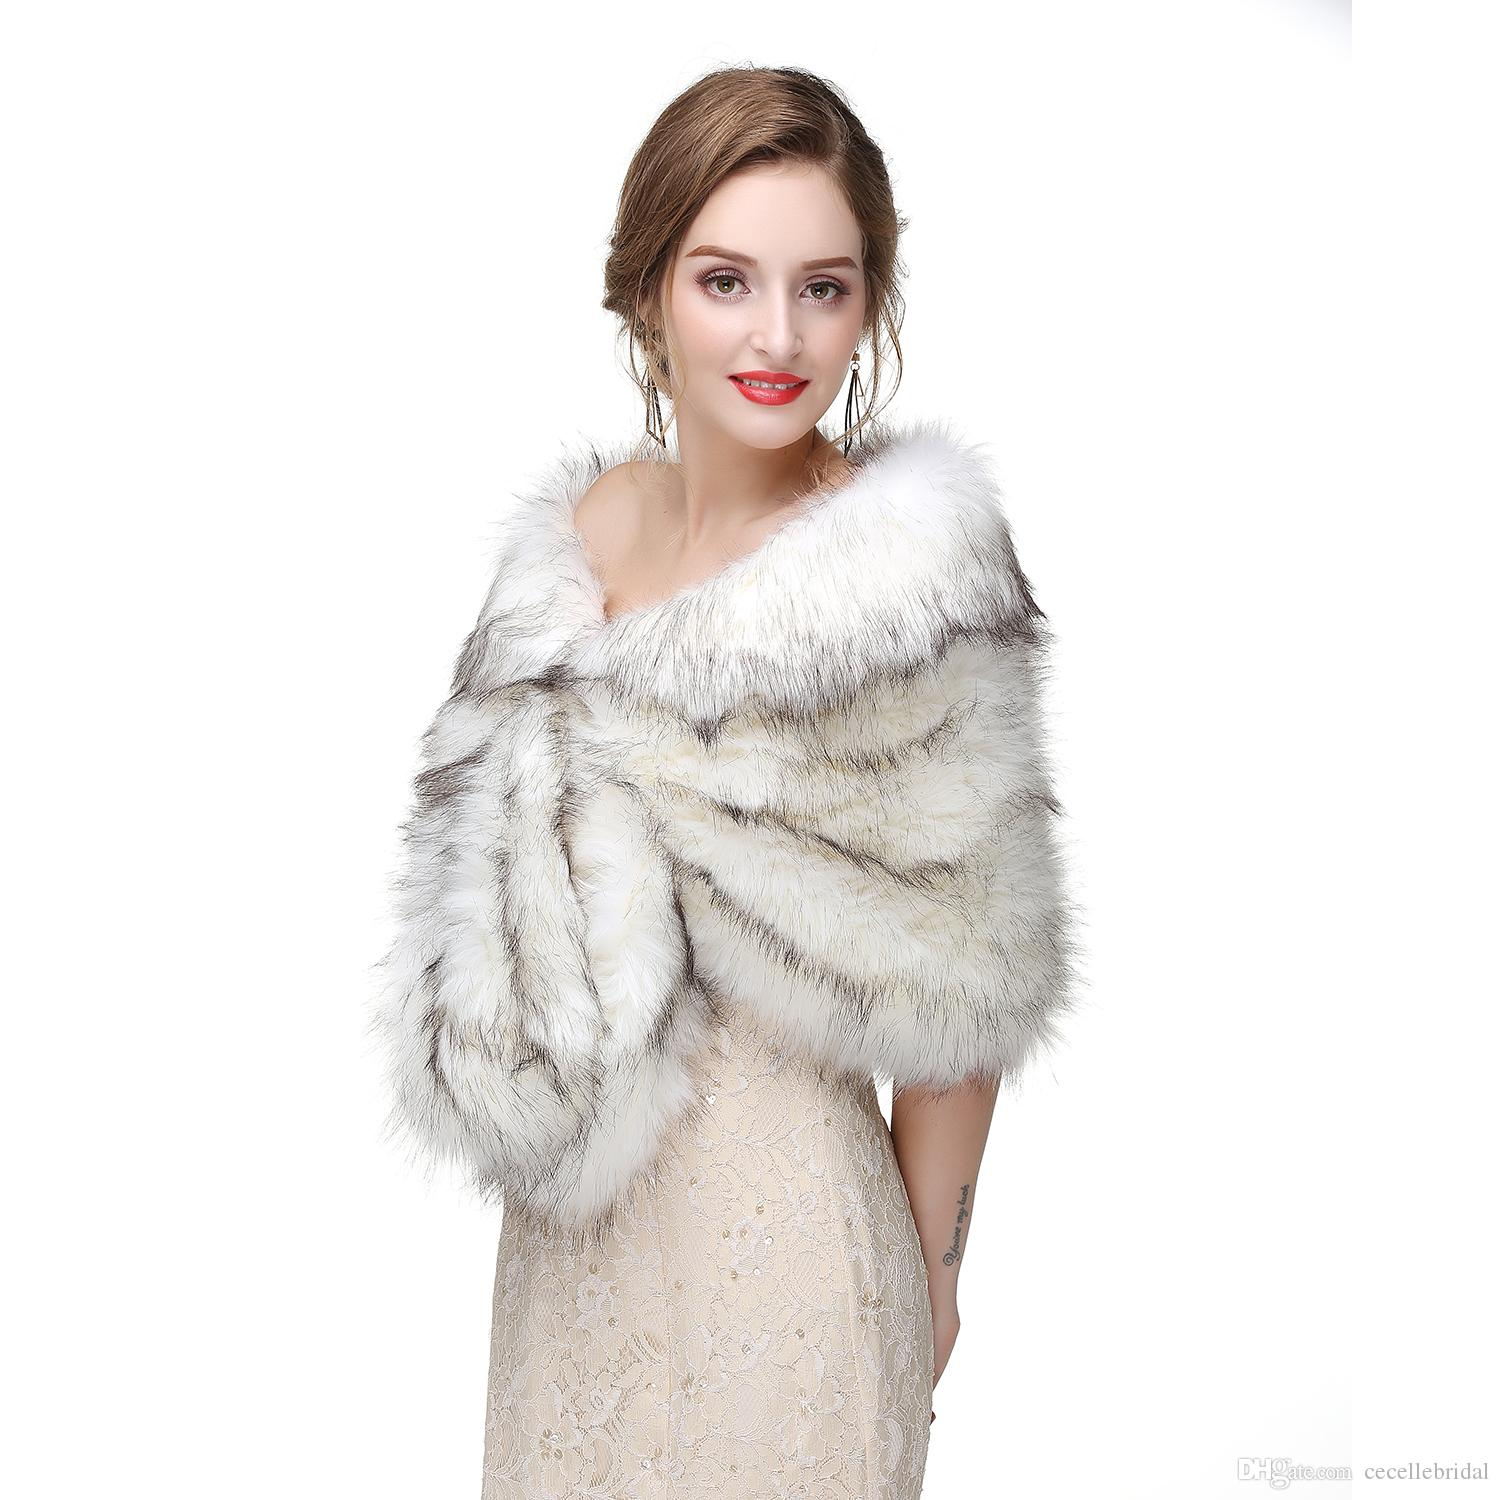 FAUX FUR SHRUG//BOLERO//CAPELET//JACKET//STOLE//COAT,DH,S-XL